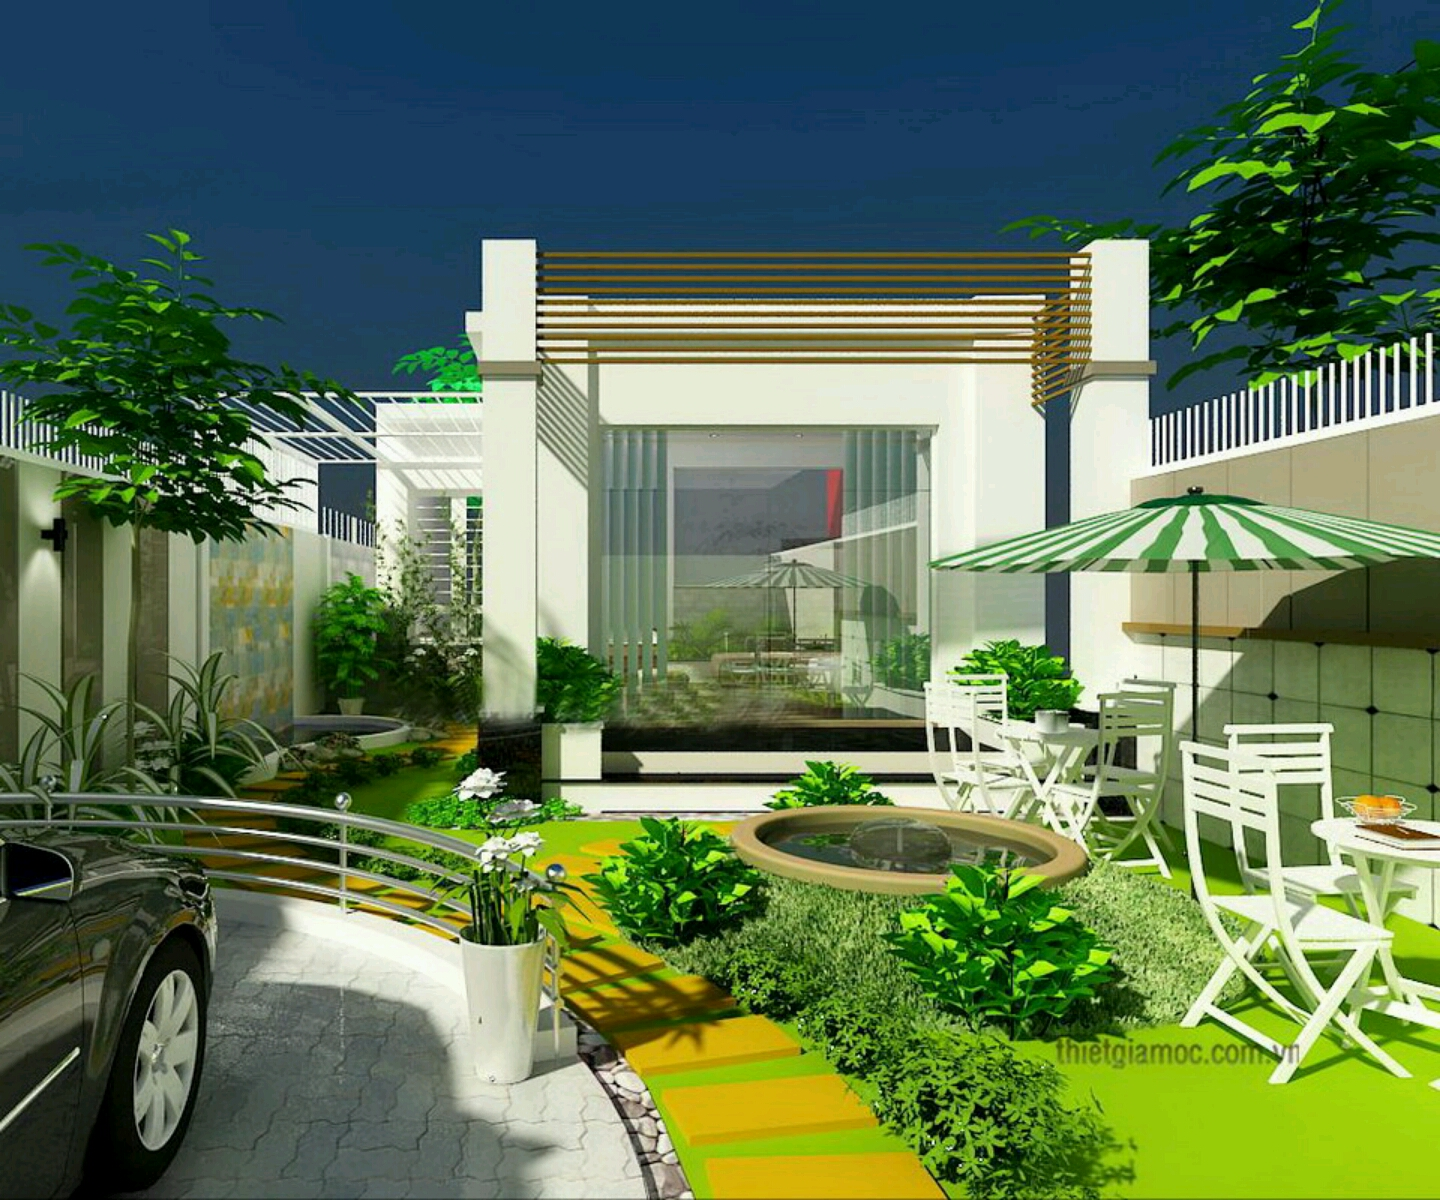 Home Garden Landscaping Ideas: Modern Homes Beautiful Garden Designs Ideas.